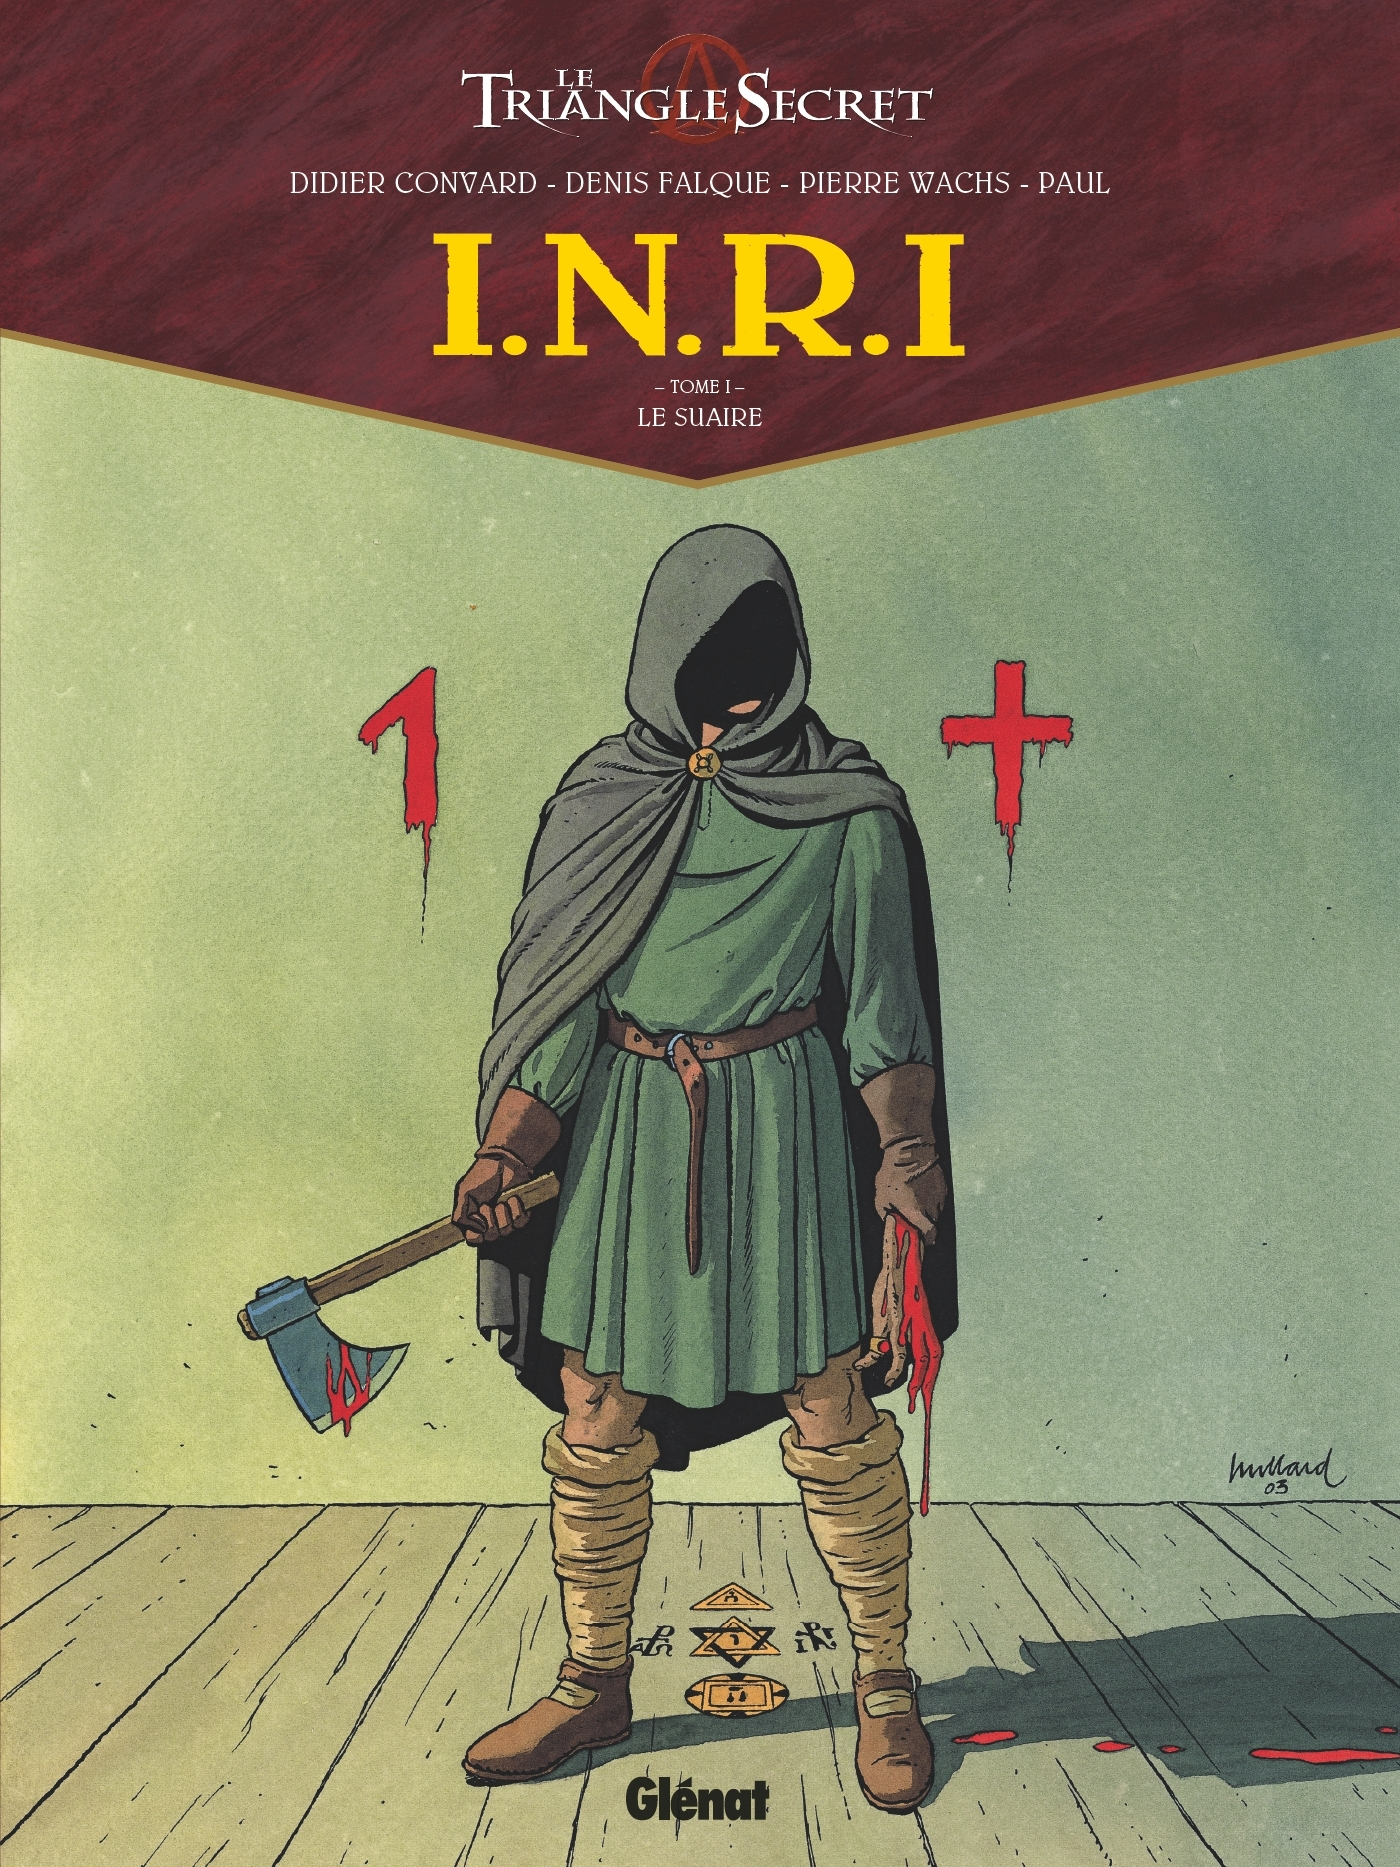 I.N.R.I - TOME 01 - LE SUAIRE